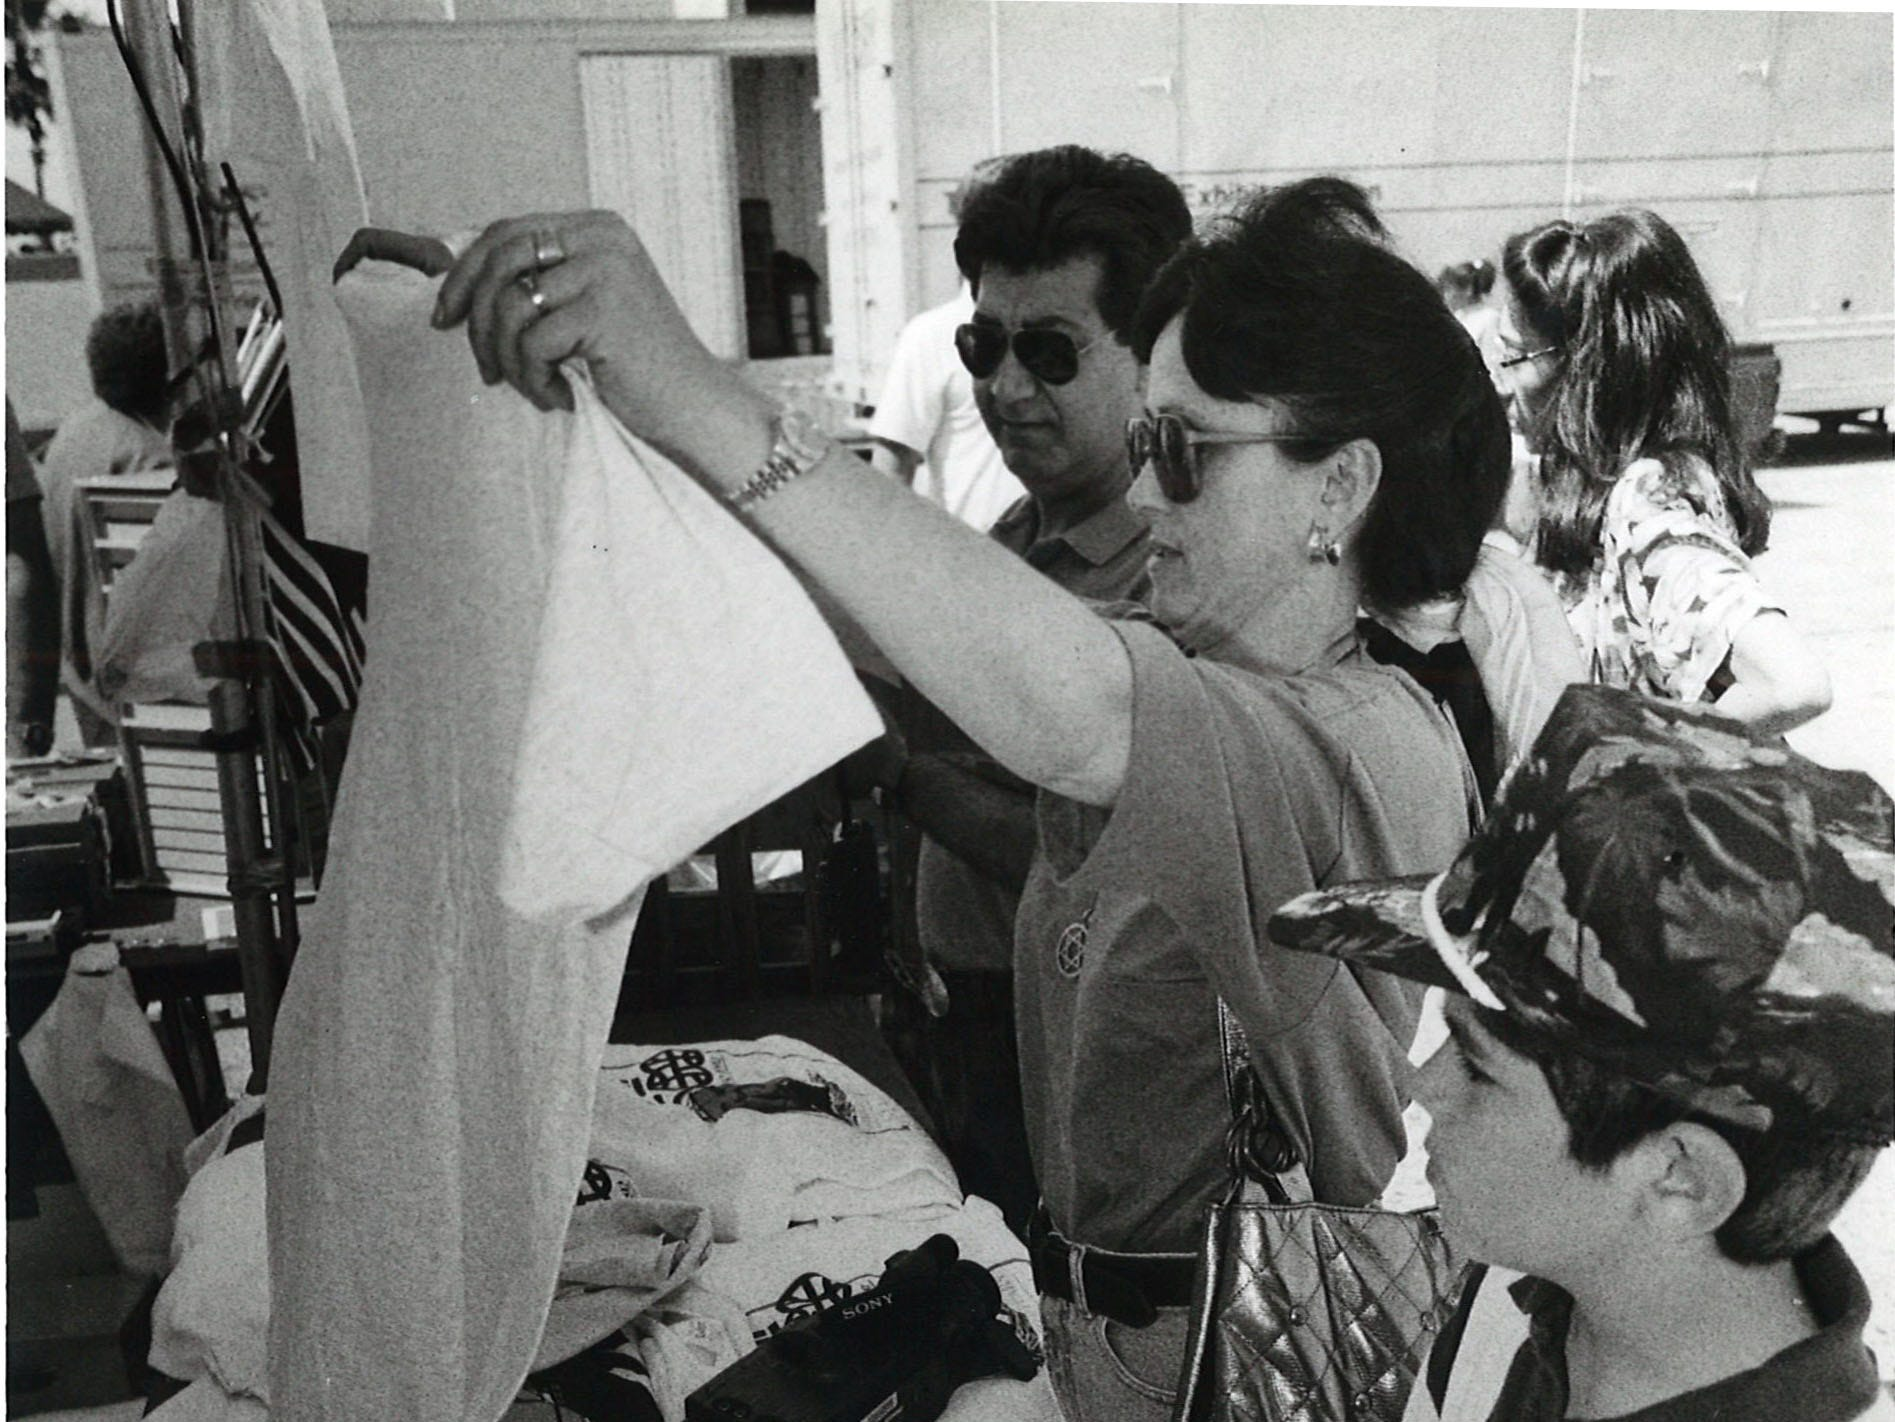 Benny Beniflah (left), Anna Beniflah and their son Jacob check out souvenirs at the site of the Los Barcos ships on March 17, 1992. The Columbs ships docked in Corpus Christi for 10 days as part of the 500th anniversary of Christopher Columbus' voyage to the Americas.